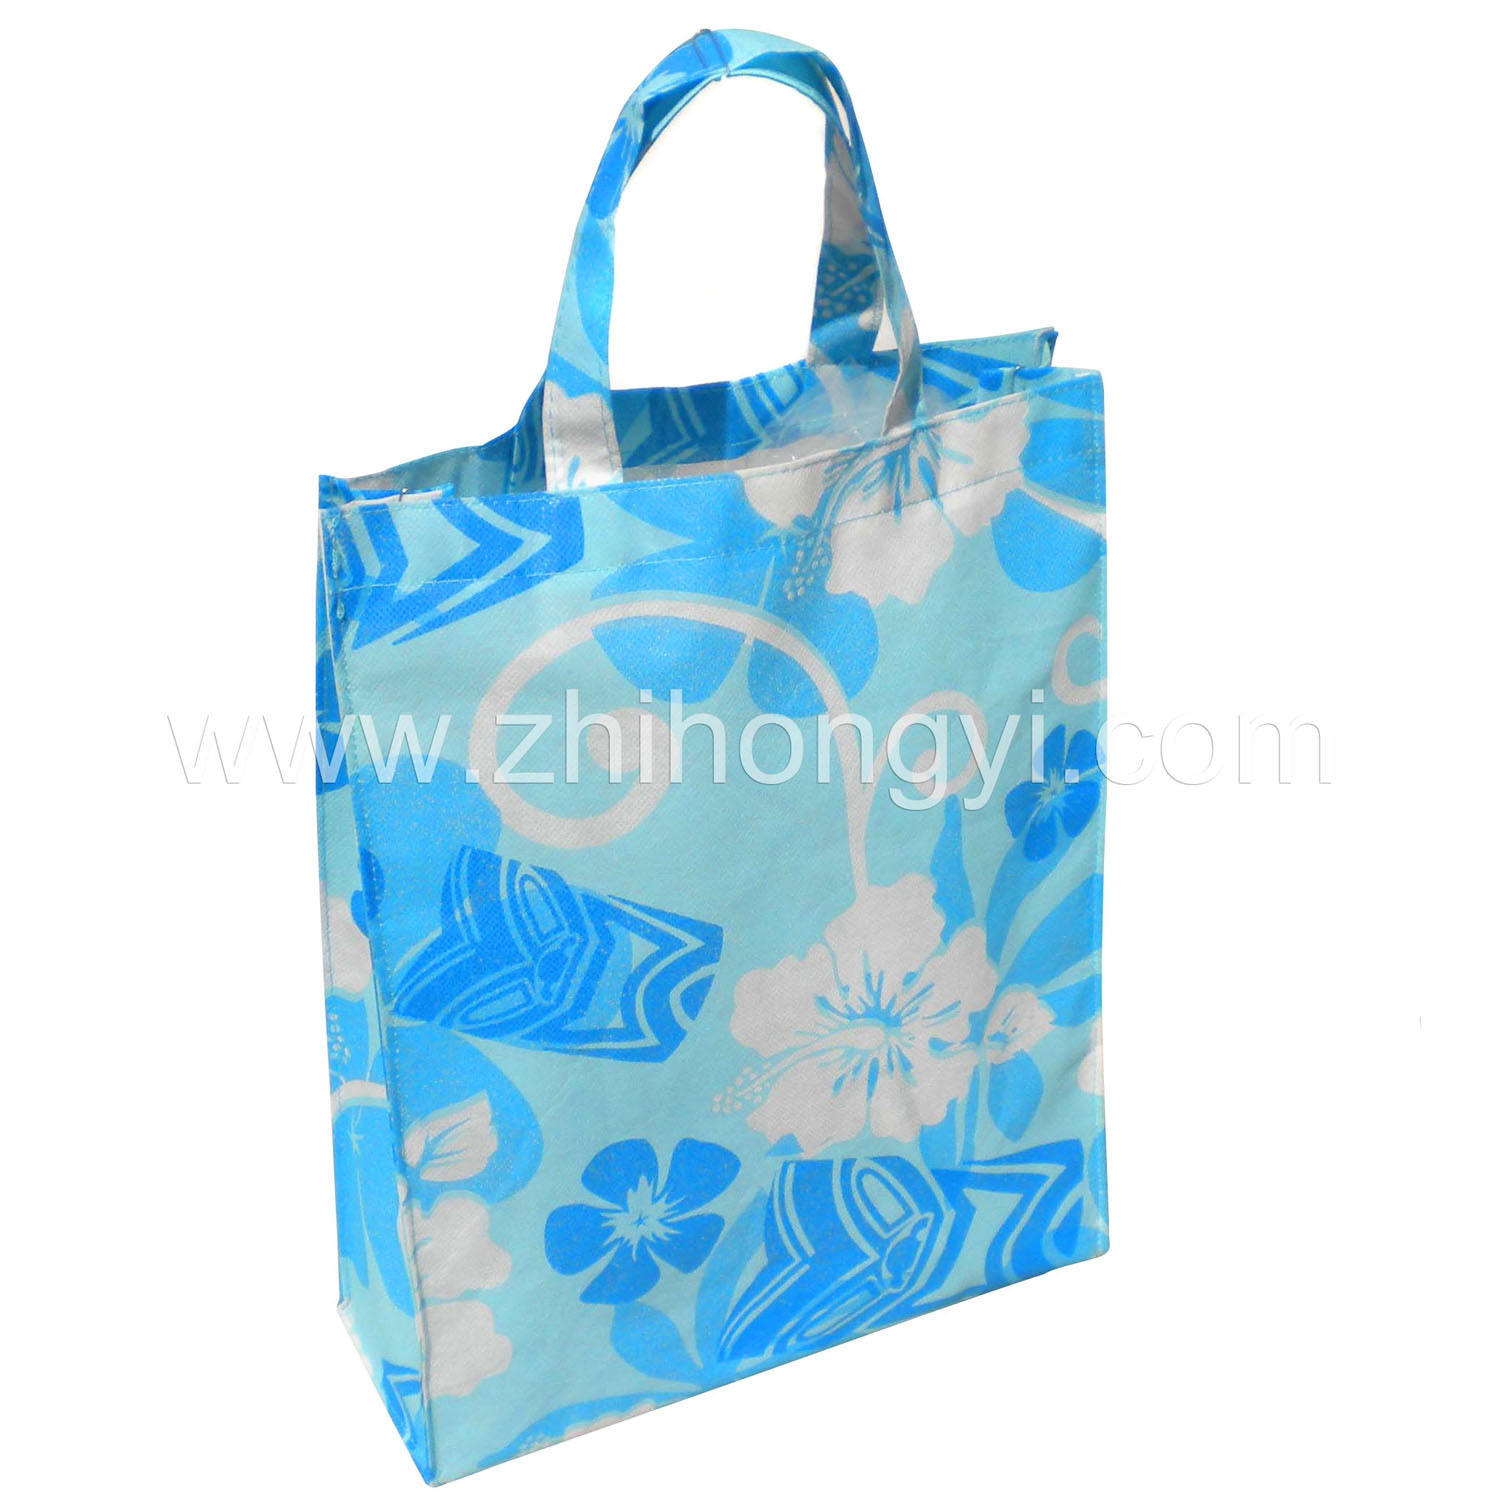 Find great deals on eBay for recycle shopping bags. Shop with confidence.